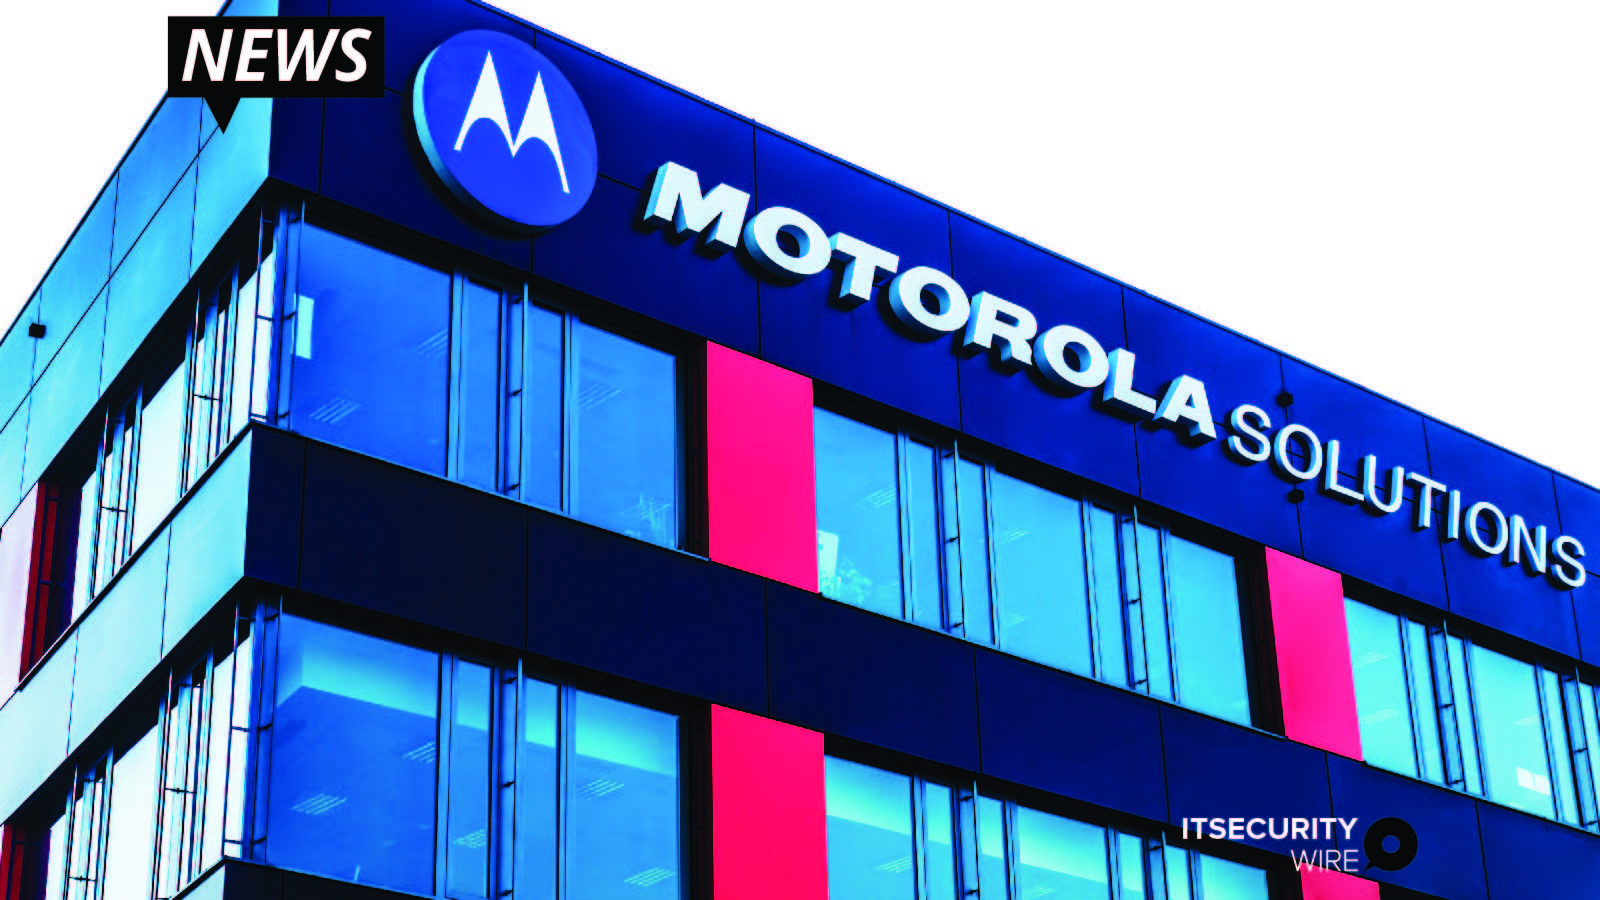 Motorola Solutions Adds Cloud-Based, Emergency Response Offerings to Its Command Center Software Suite